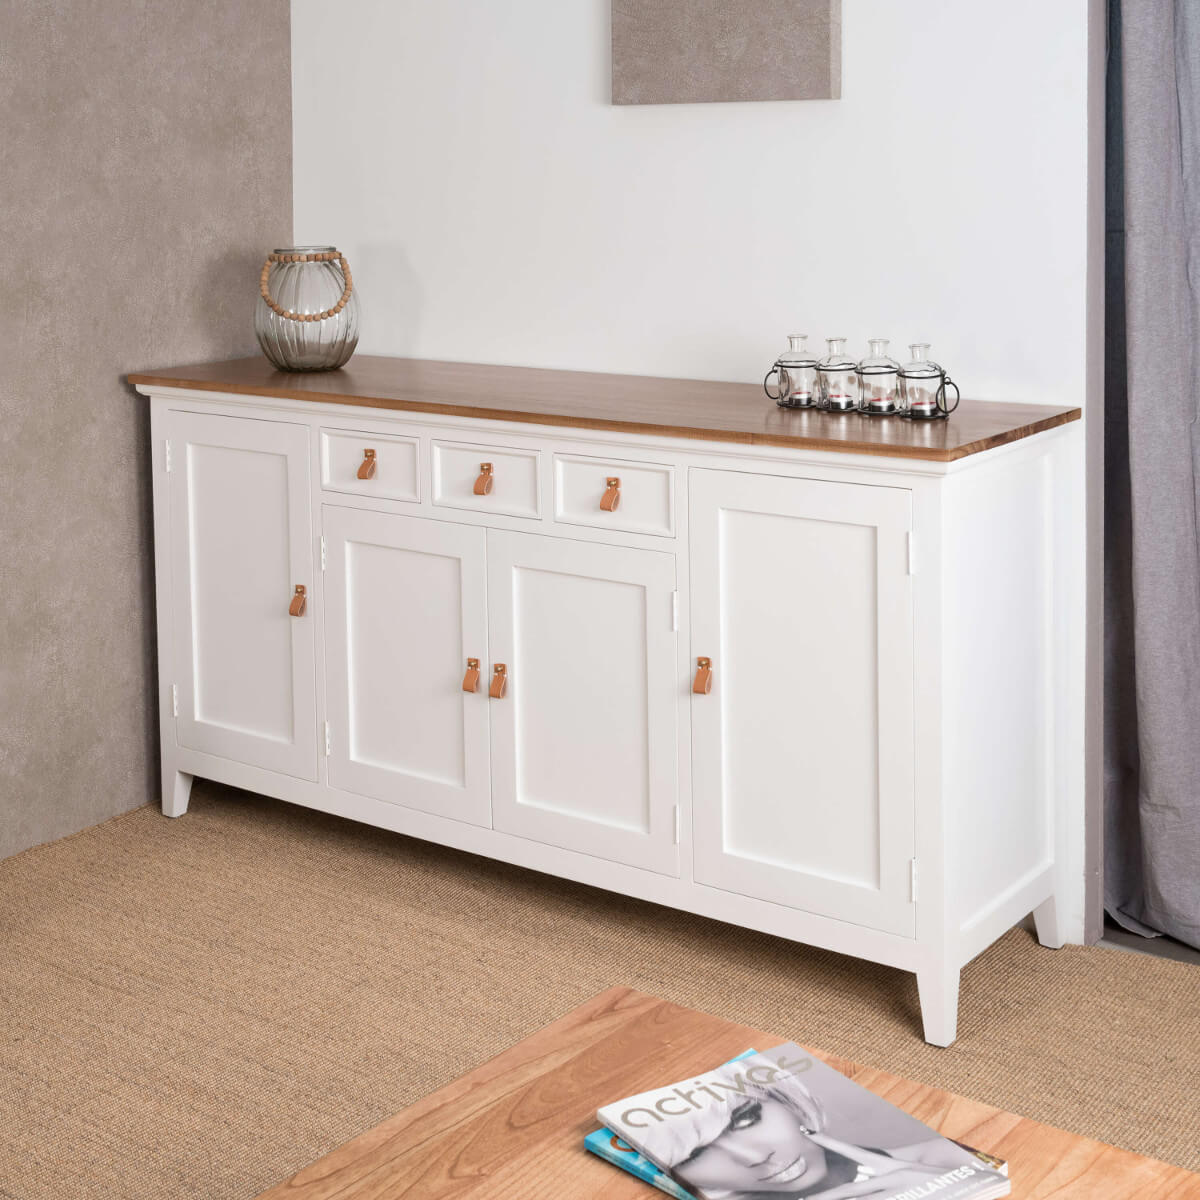 Buffet salon bois acajou et pin massif chic rectangle for Buffet salle a manger blanc design